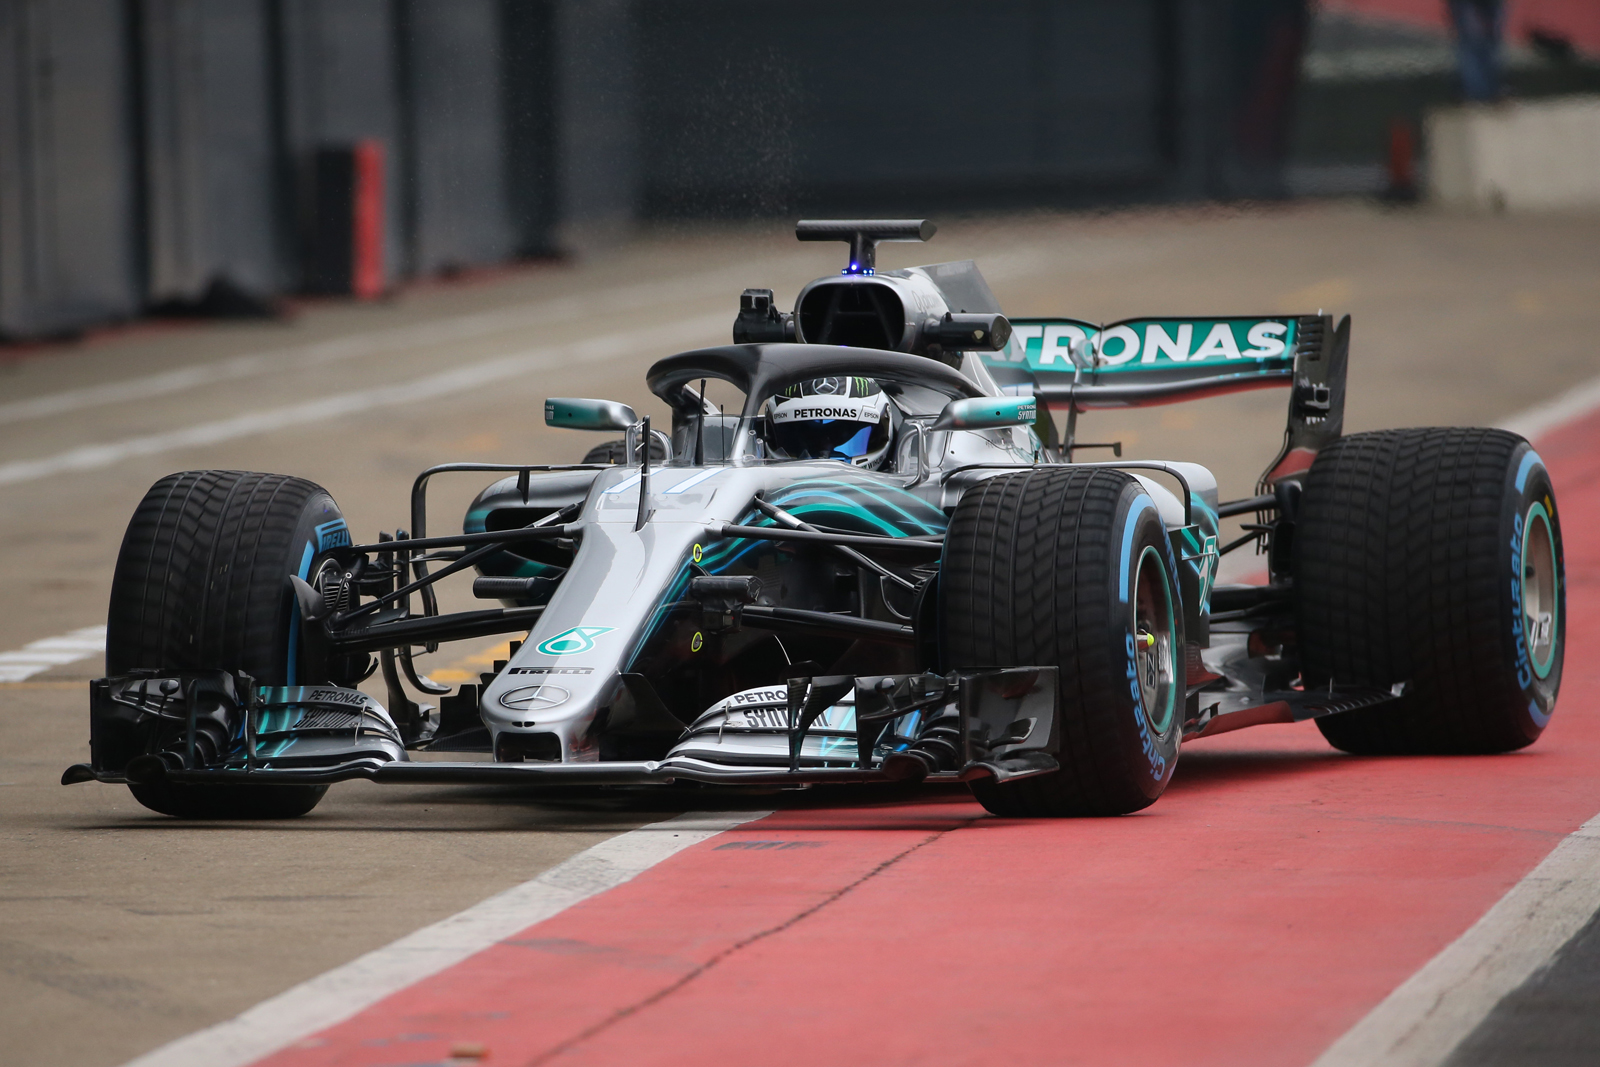 The Latest Mercedes-AMG F1 Car Looks Absolutely Bonkers ...